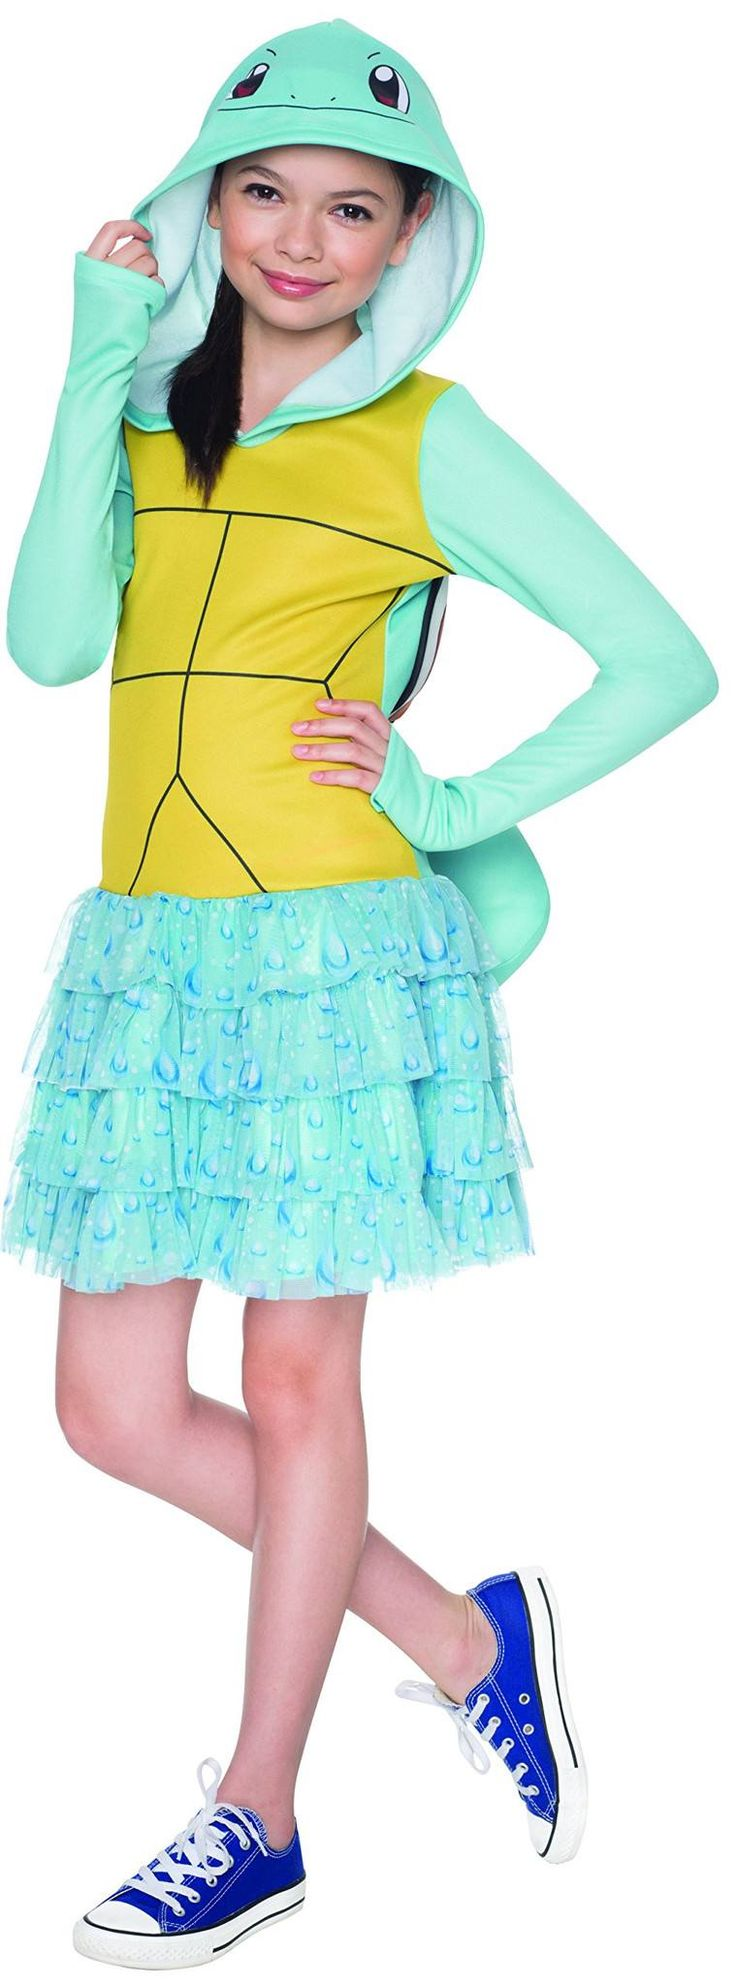 52 best Squirtle Baby Costume images on Pinterest | Baby costumes ...